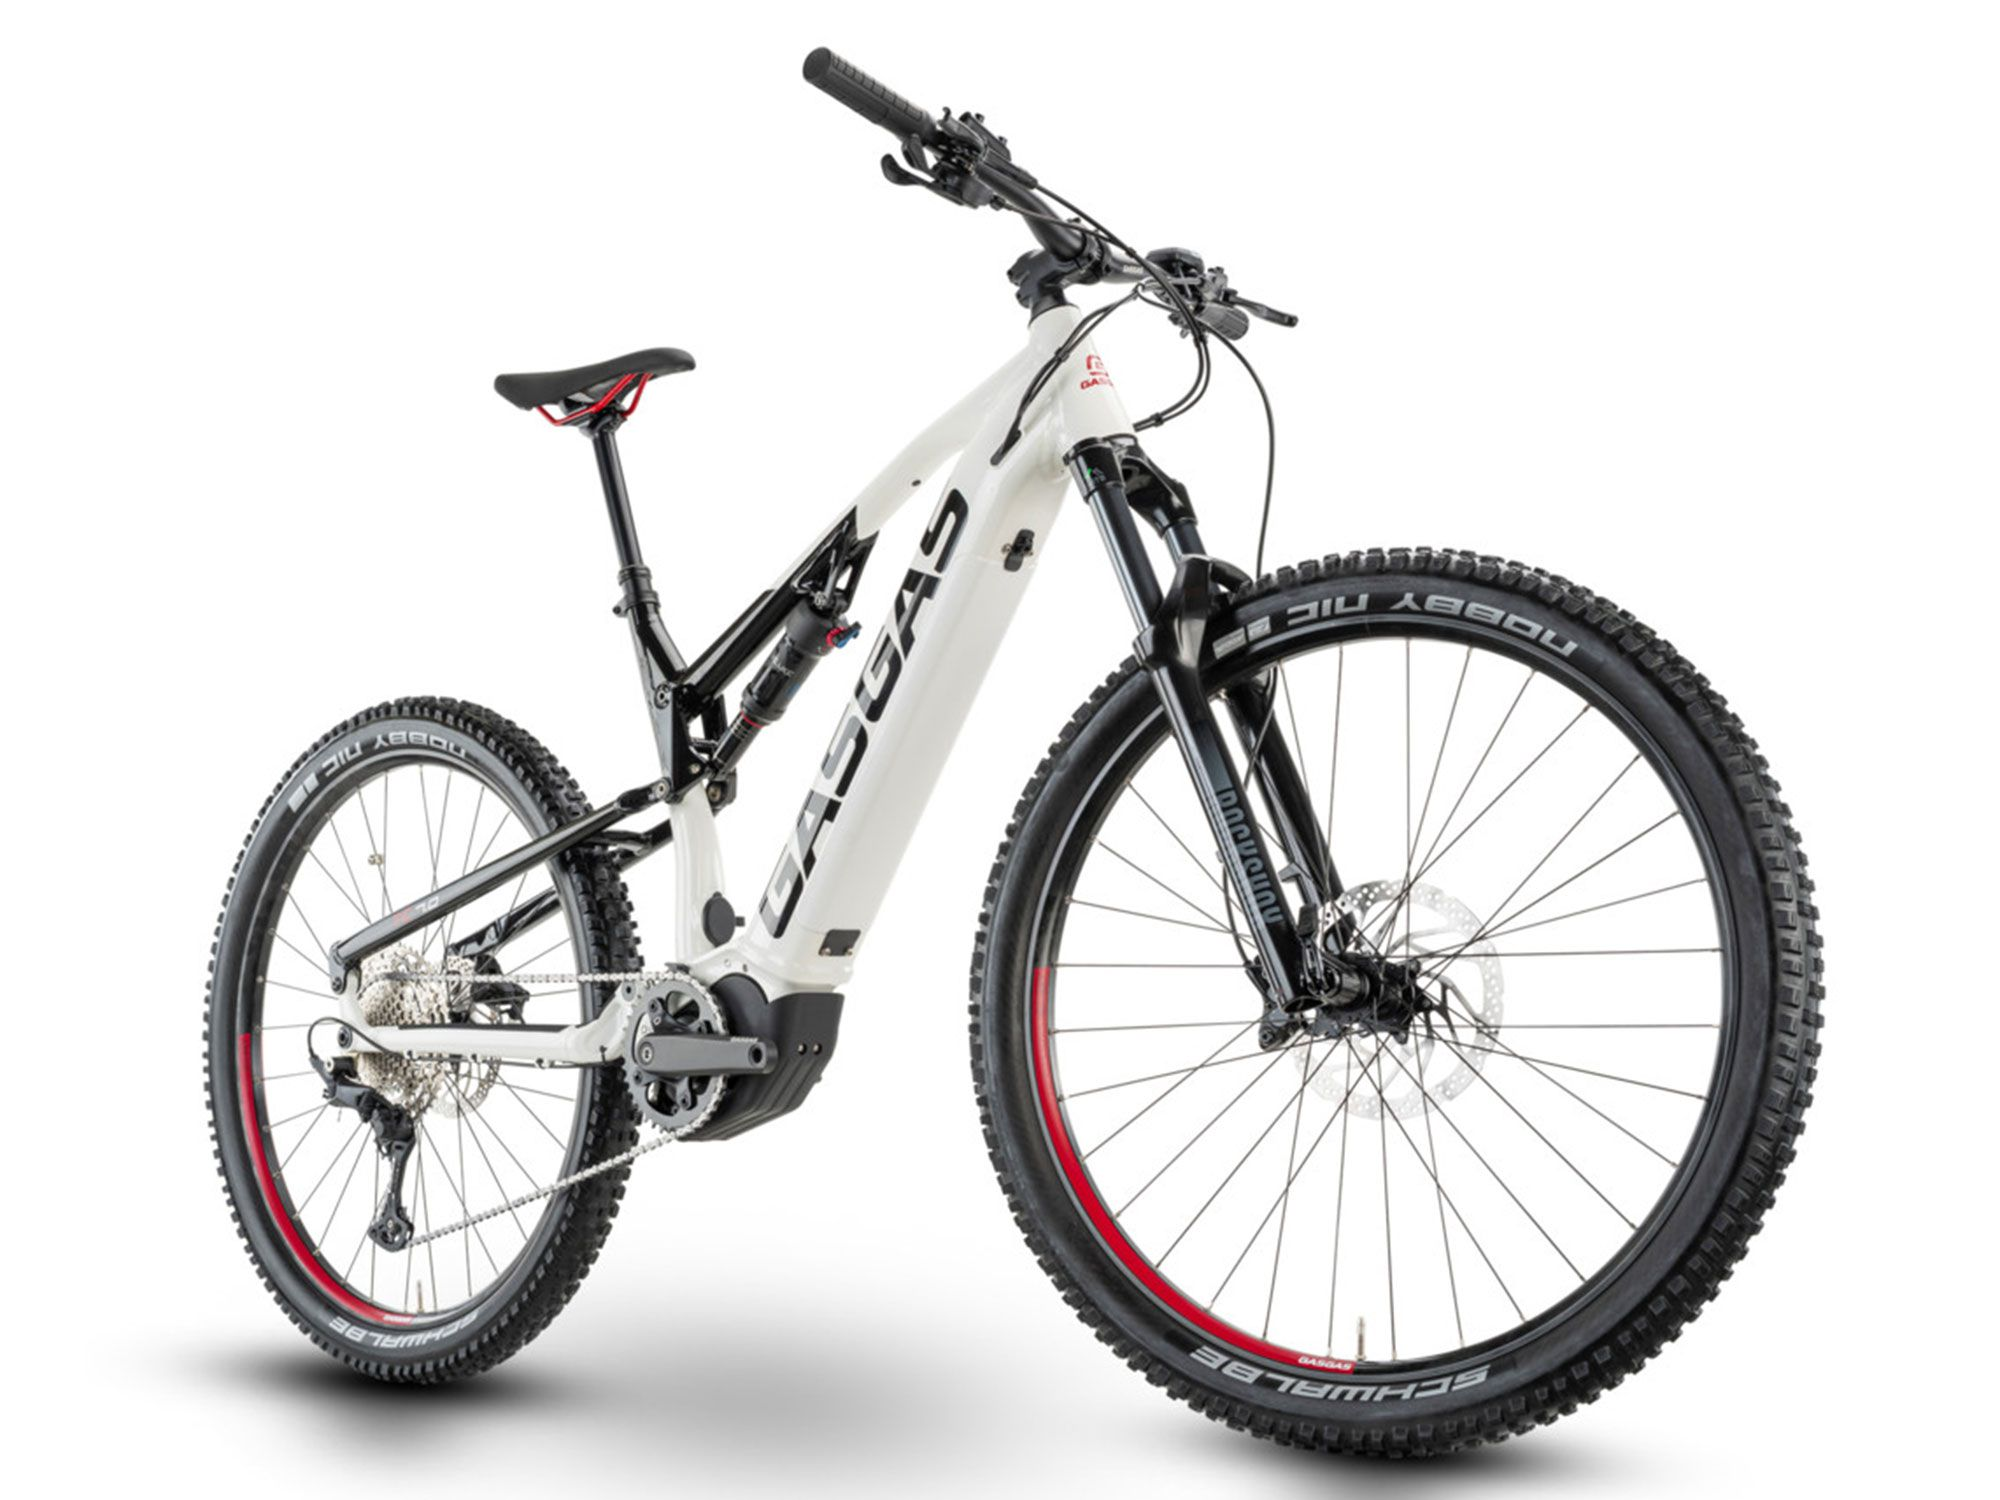 The Trail Cross 7.0 packs a bevy of rider support systems.